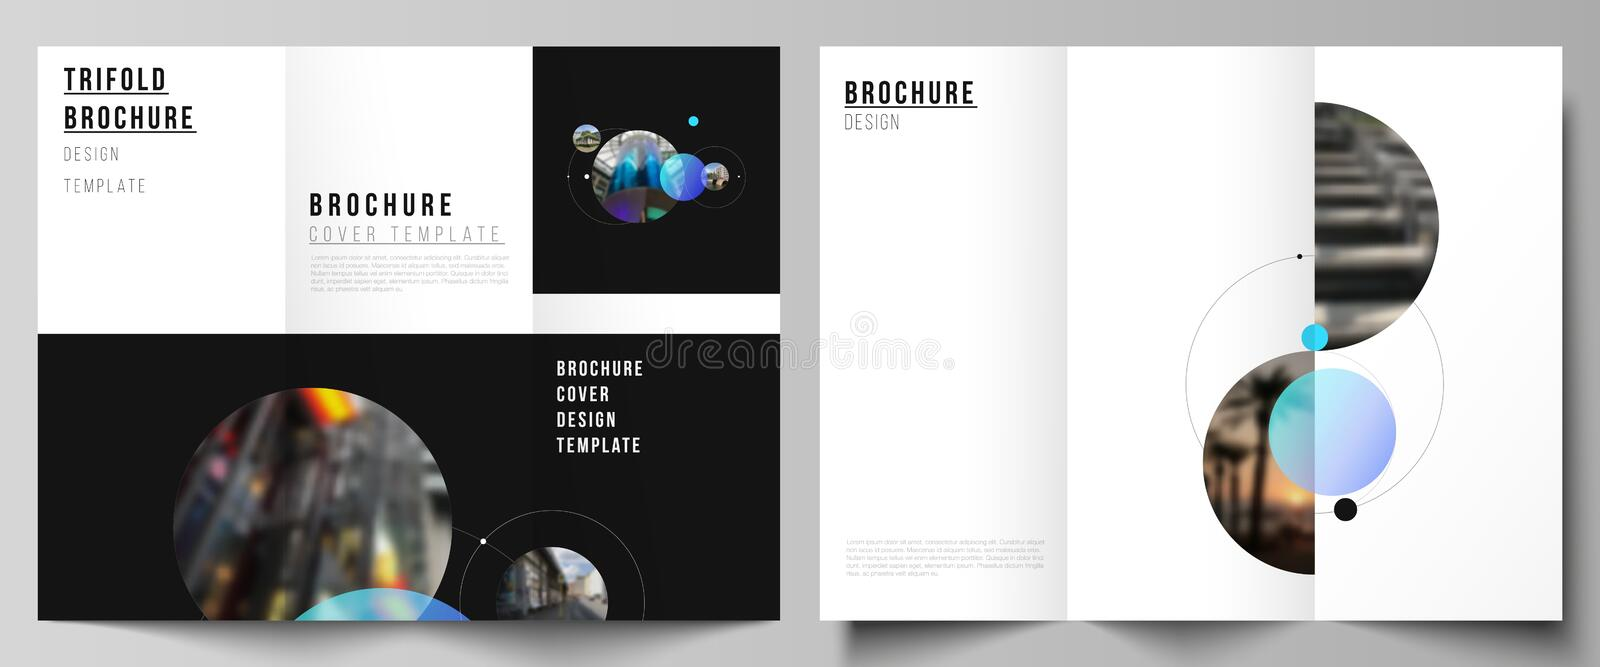 The vector layouts of creative covers design templates for trifold brochure or flyer. Simple design futuristic concept. Creative background with circles and vector illustration